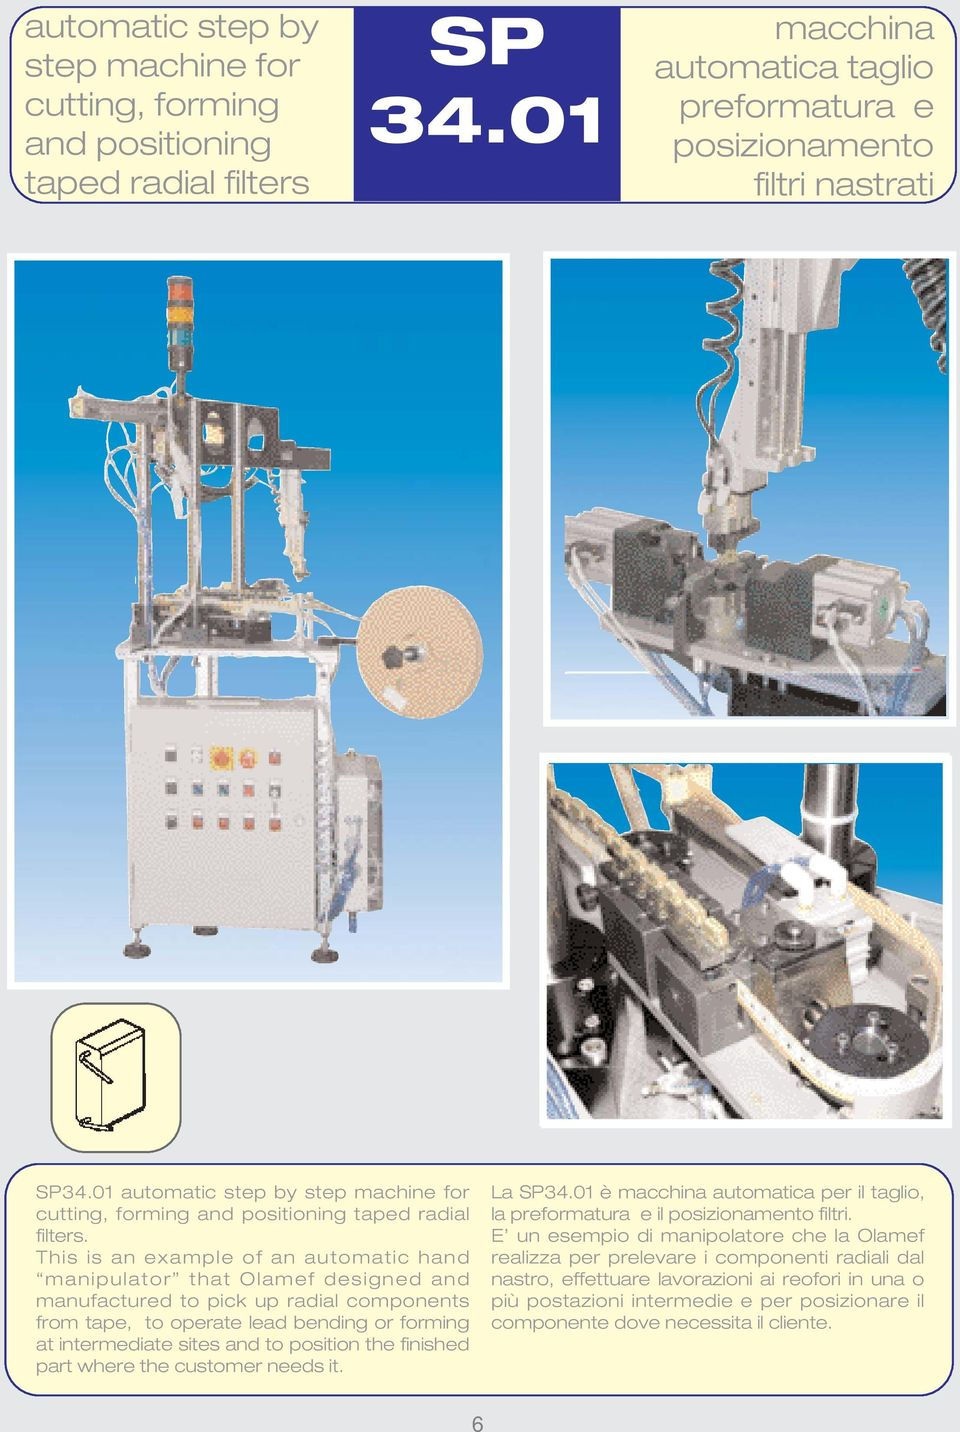 This is an example of an automatic hand manipulator that Olamef designed and manufactured to pick up radial components from tape, to operate lead bending or forming at intermediate sites and to